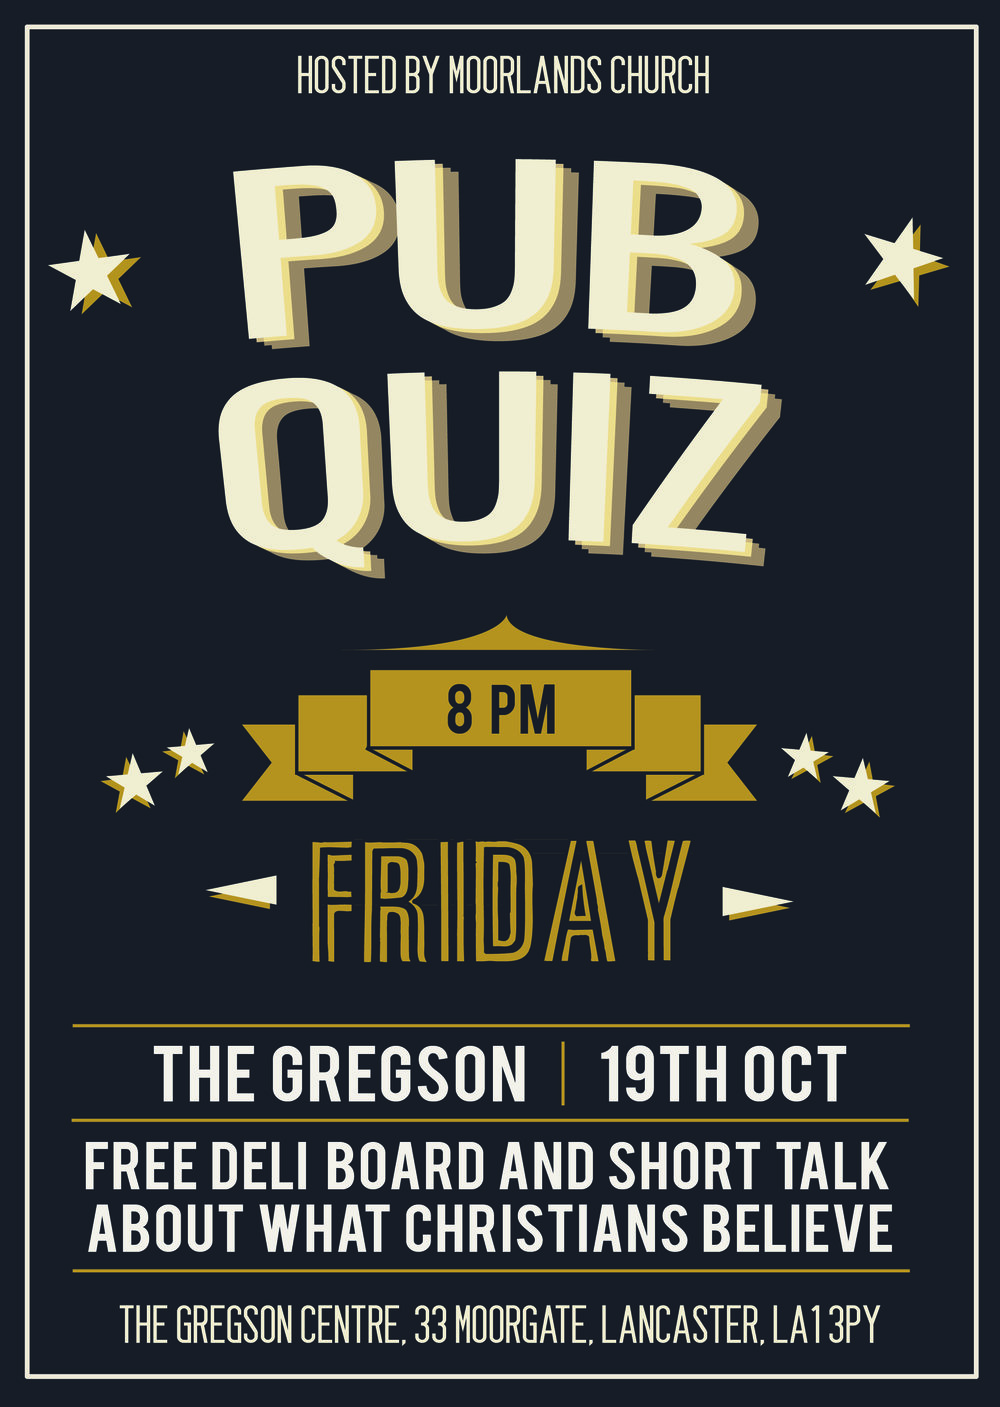 Pub Quiz Flyer 10-18-01.jpg